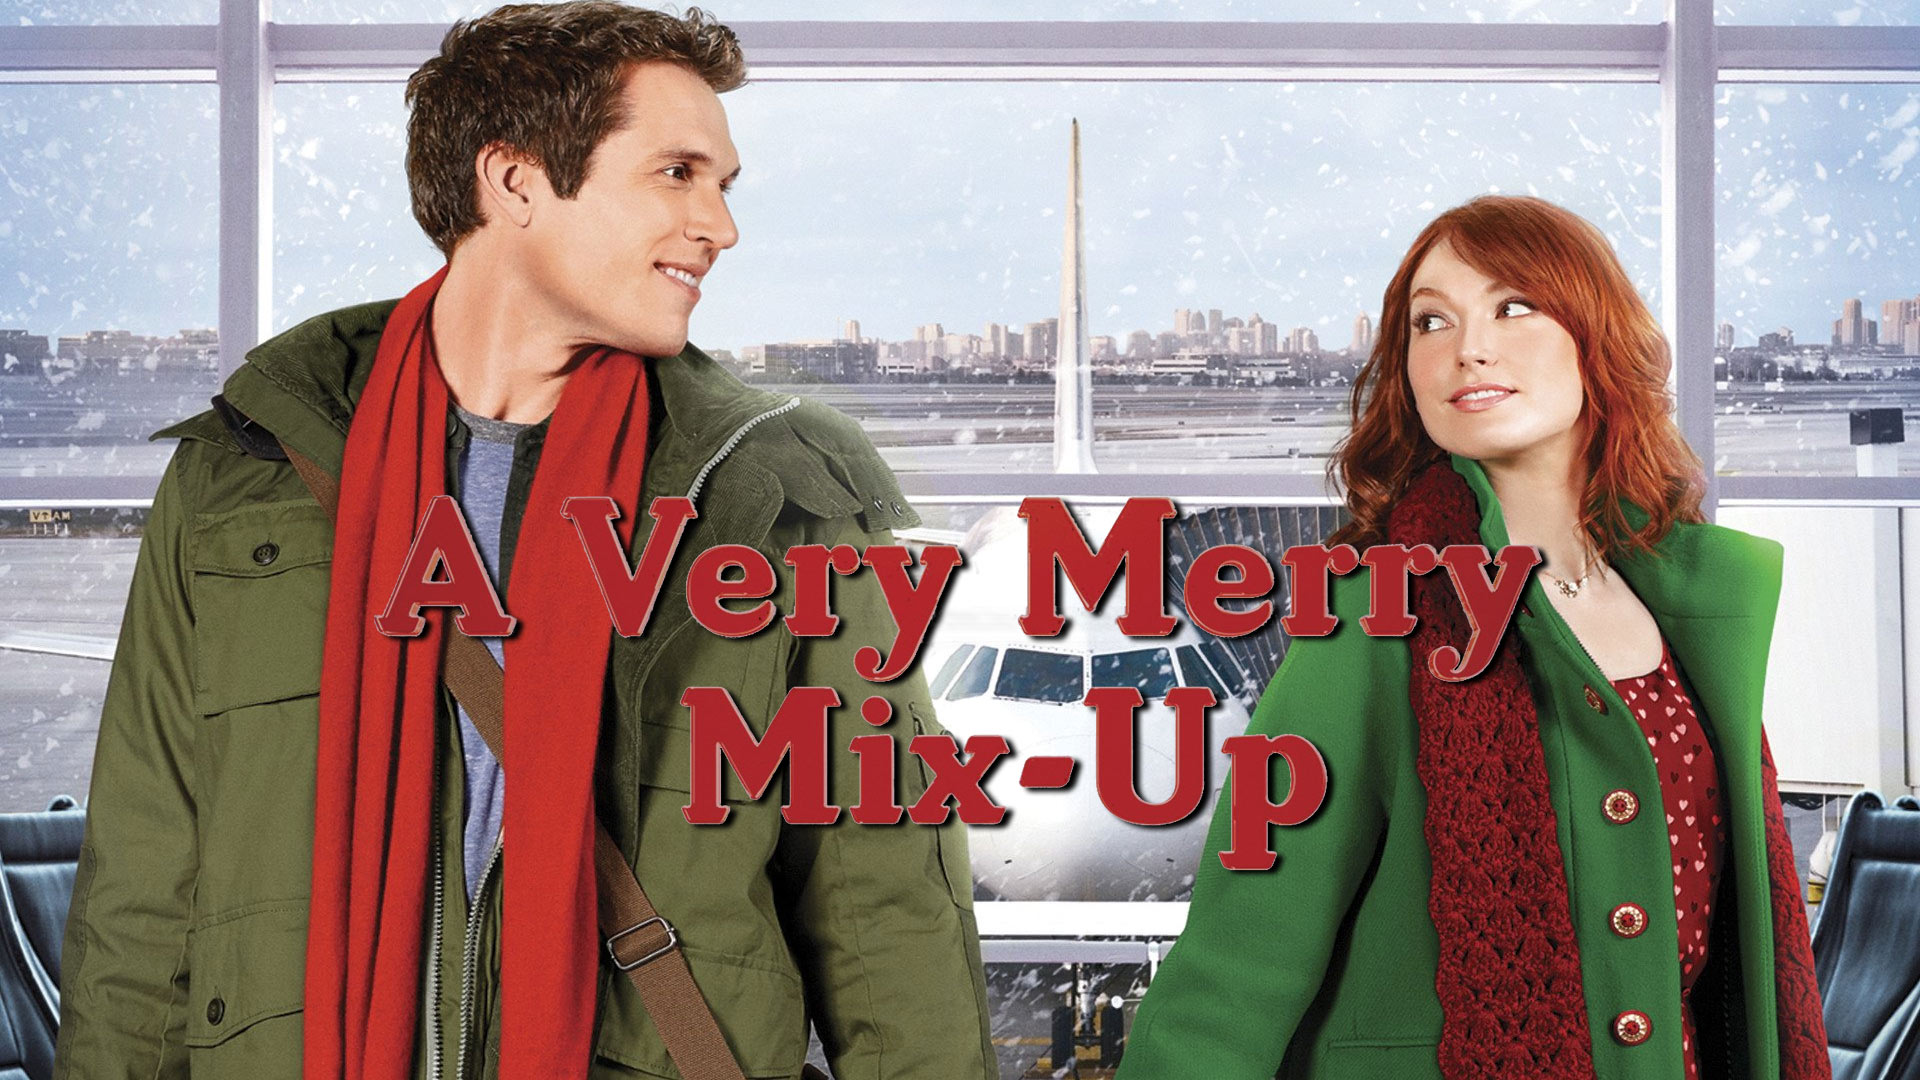 A Very Merry Mix-Up